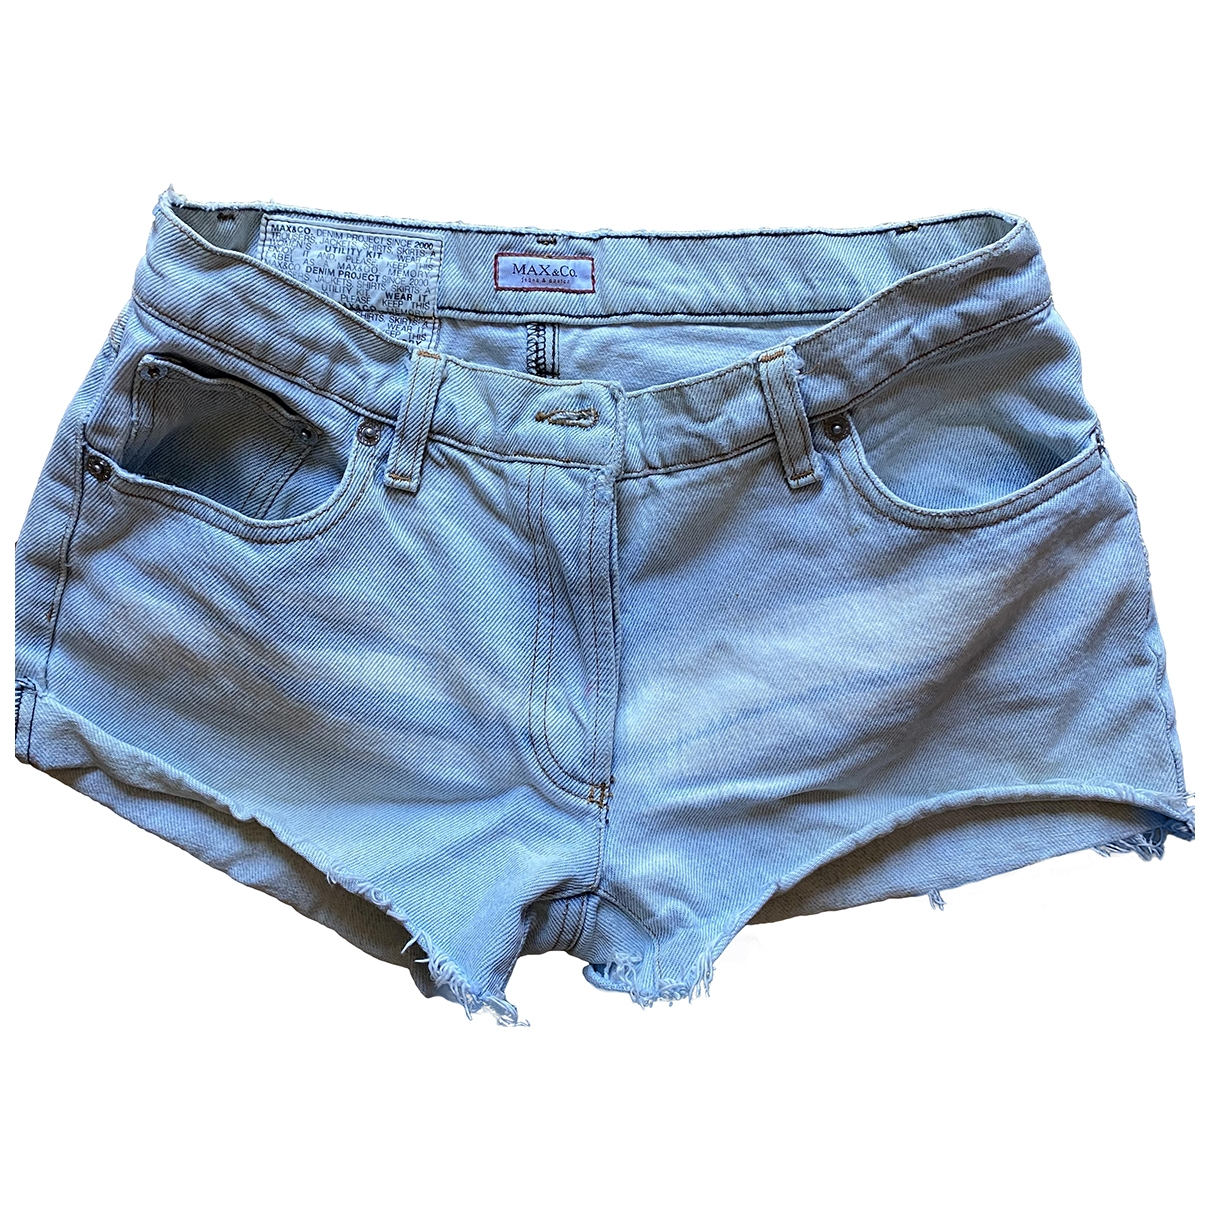 Max & Co \N Denim - Jeans Shorts for Women 38 IT